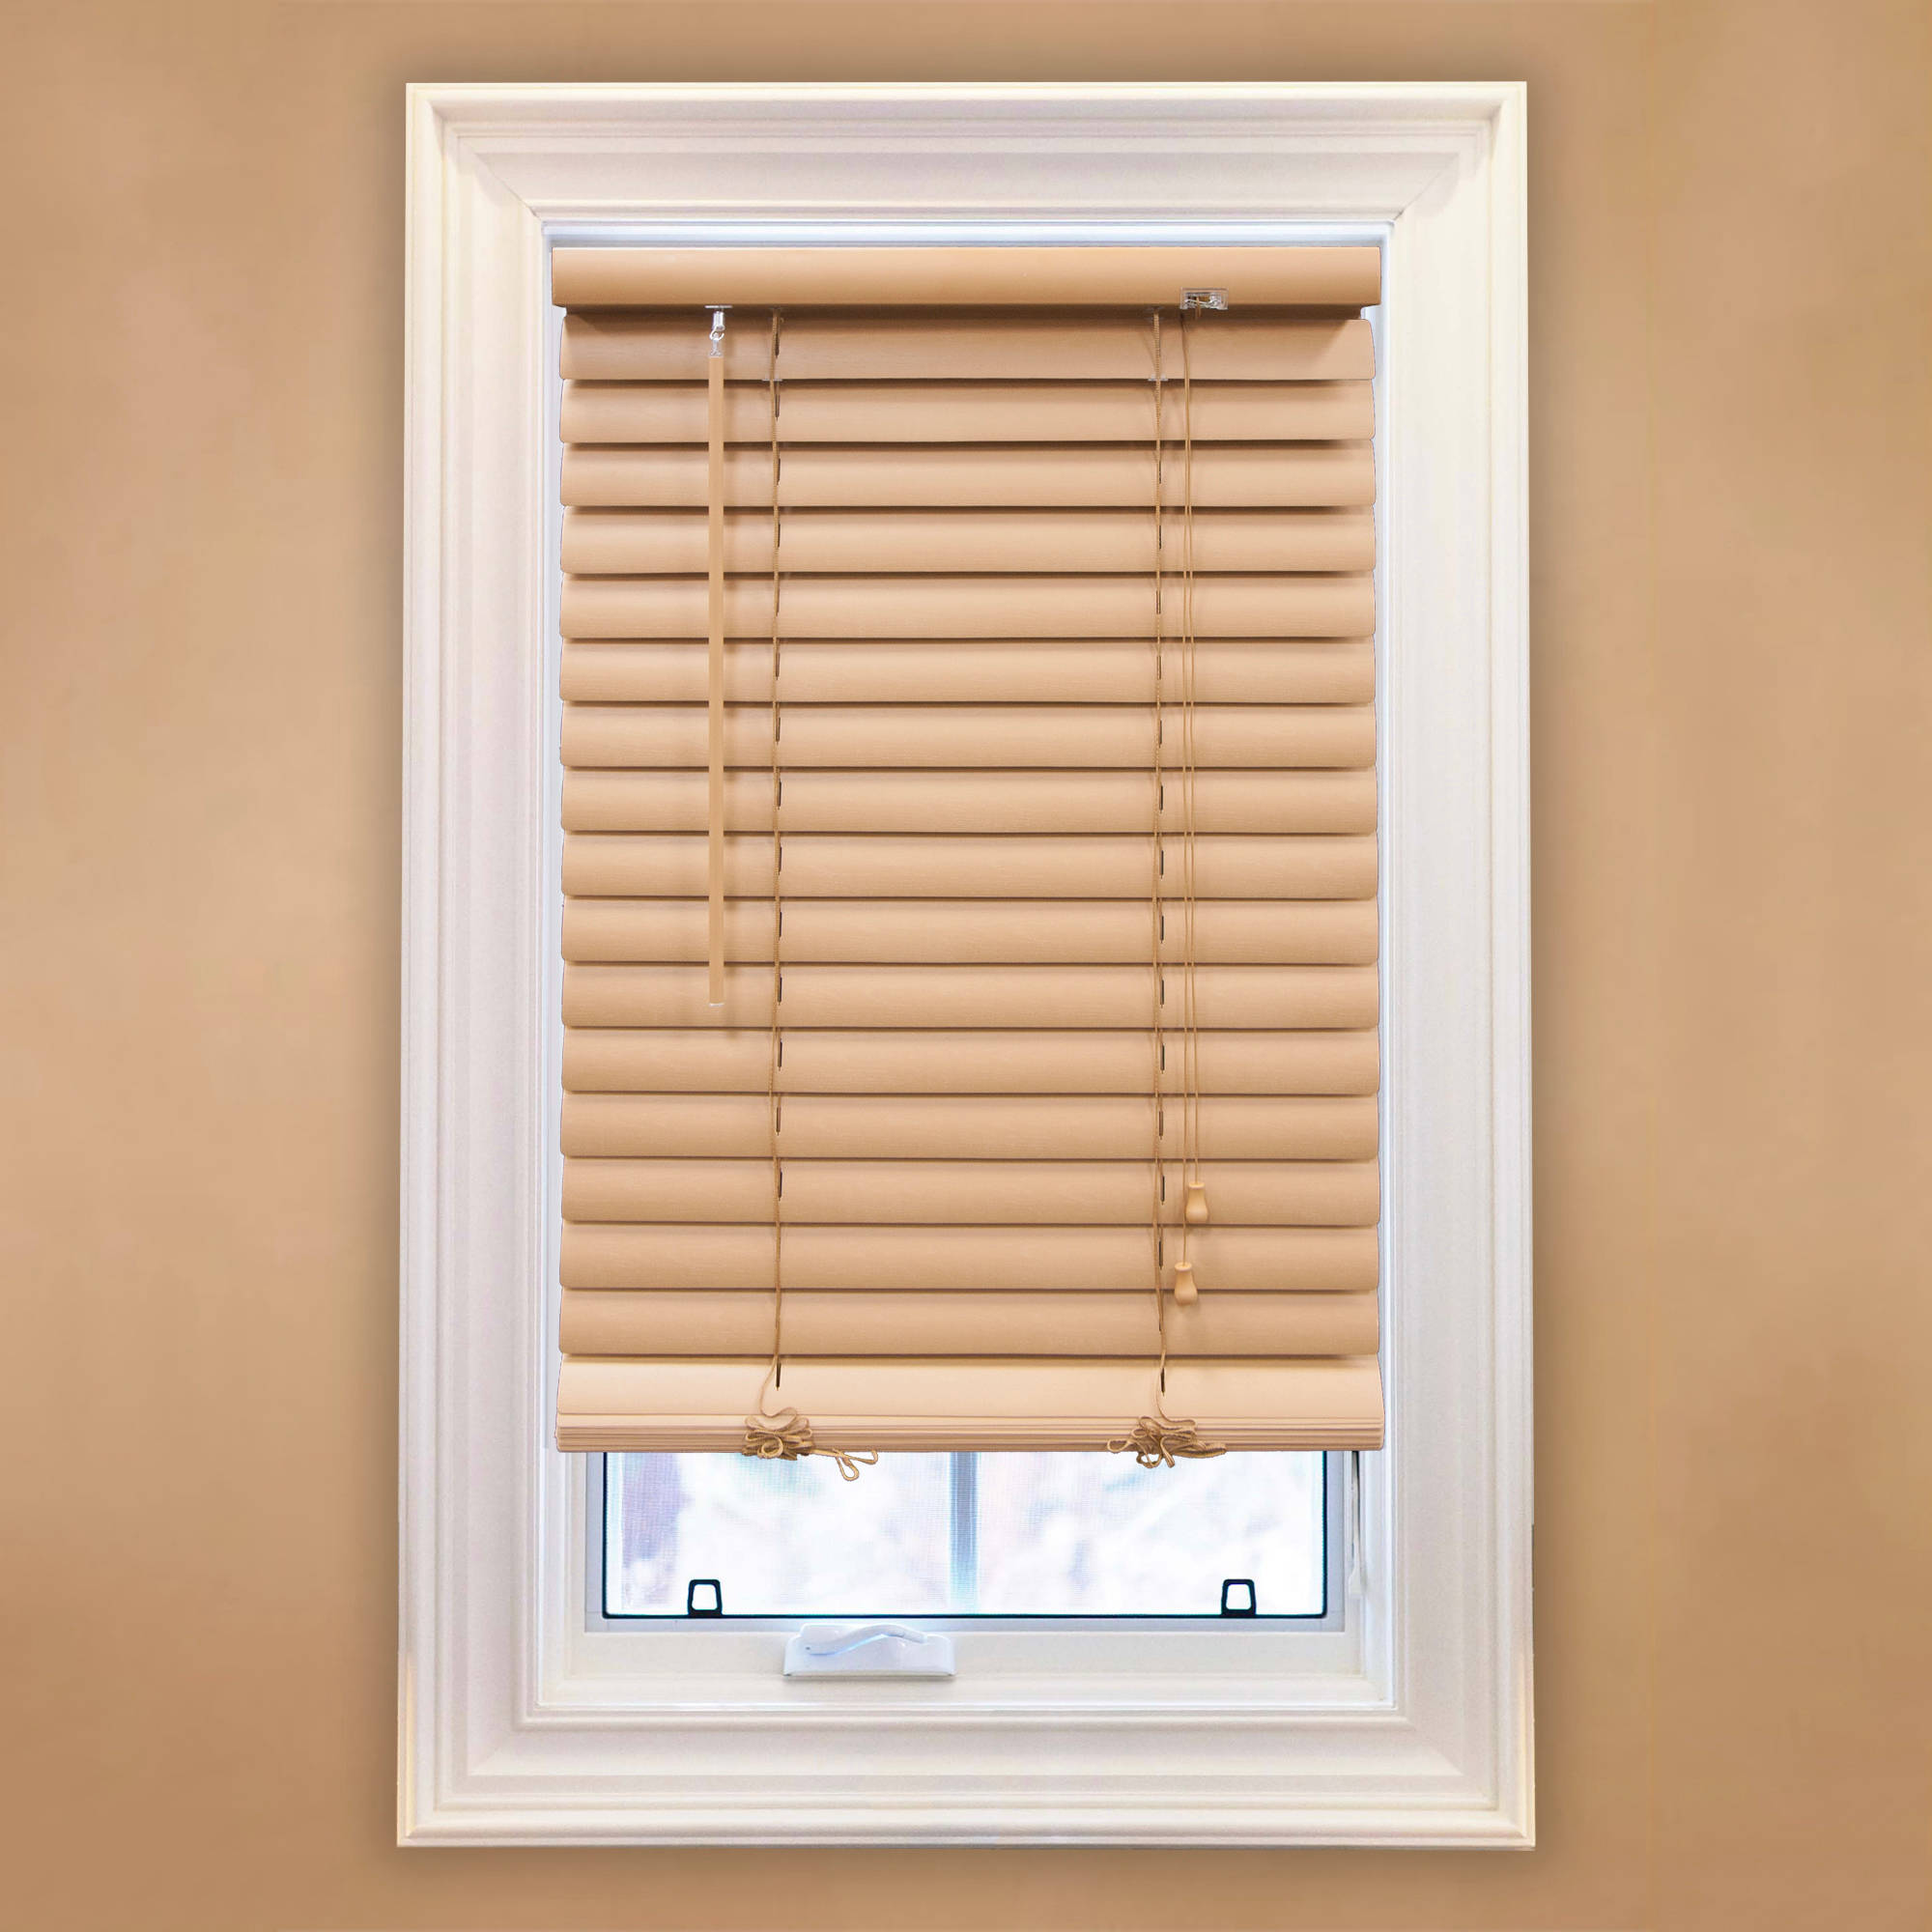 Window blinds for sale window shade price list brands amp review - Window Blinds For Sale Window Shade Price List Brands Amp Review 7